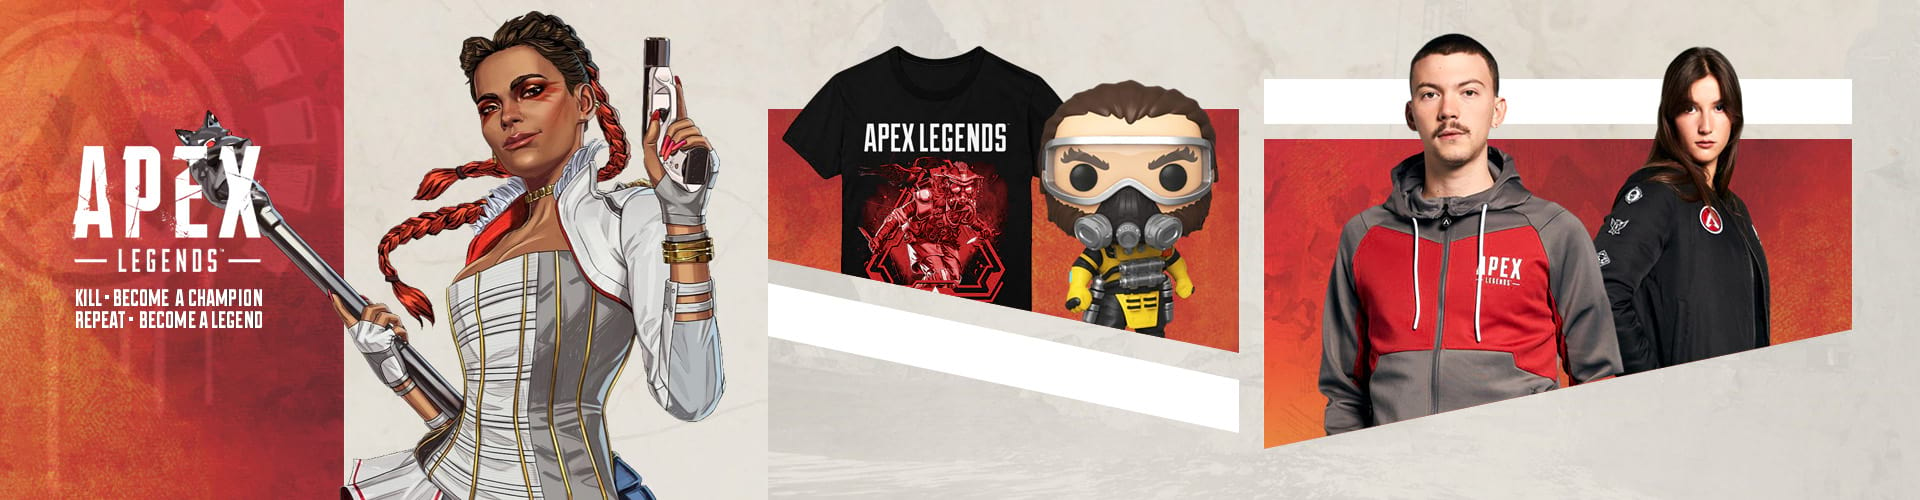 Apex Legends merchandise